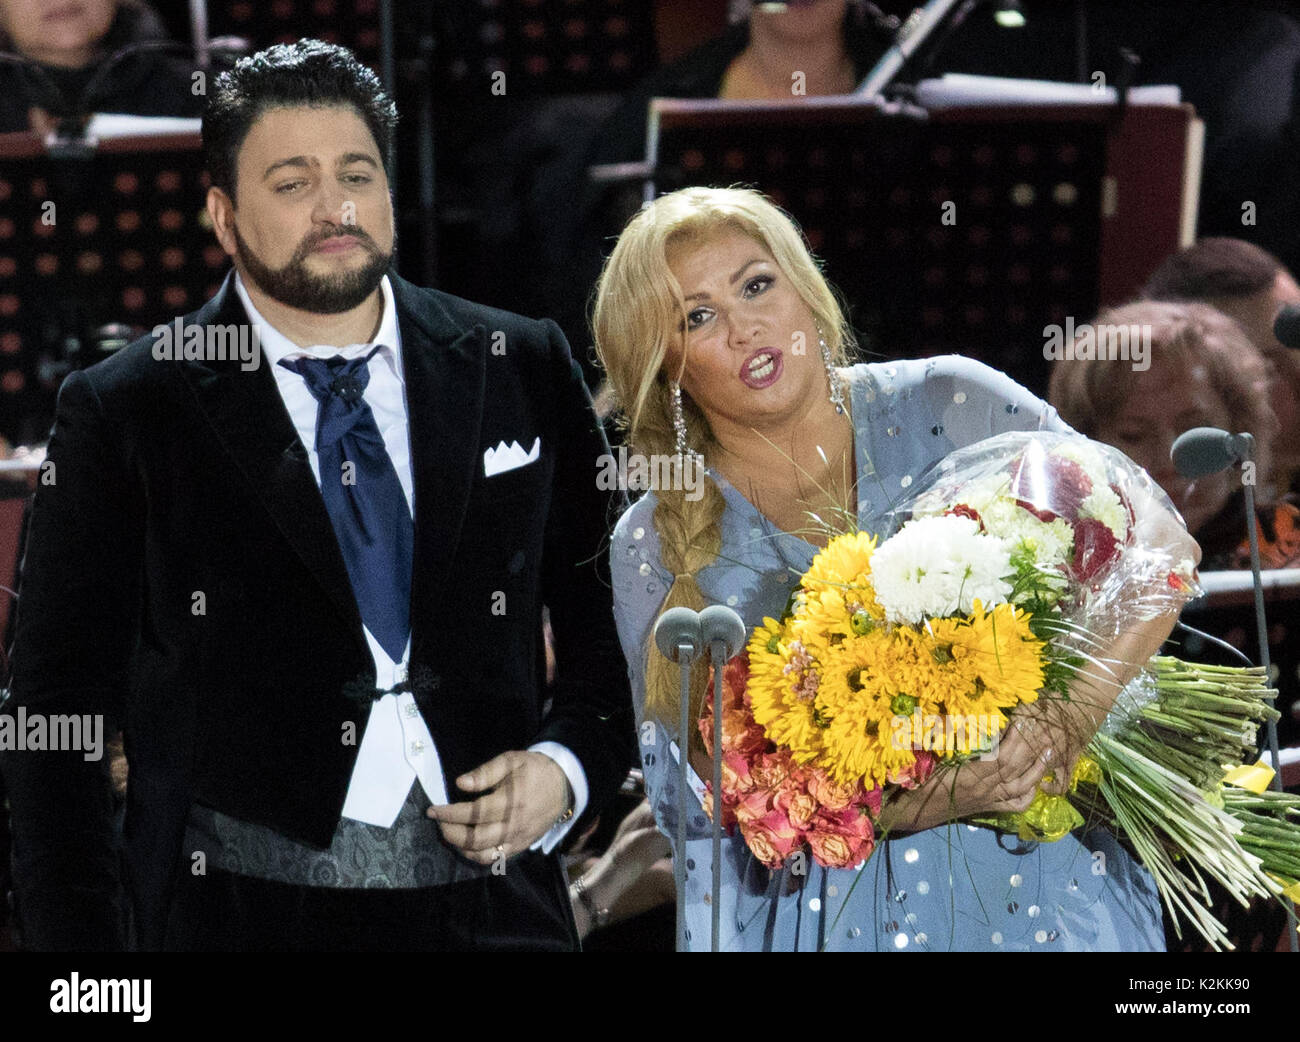 The parting of Anna Netrebko with her husband caused a stir 26.11.2013 85